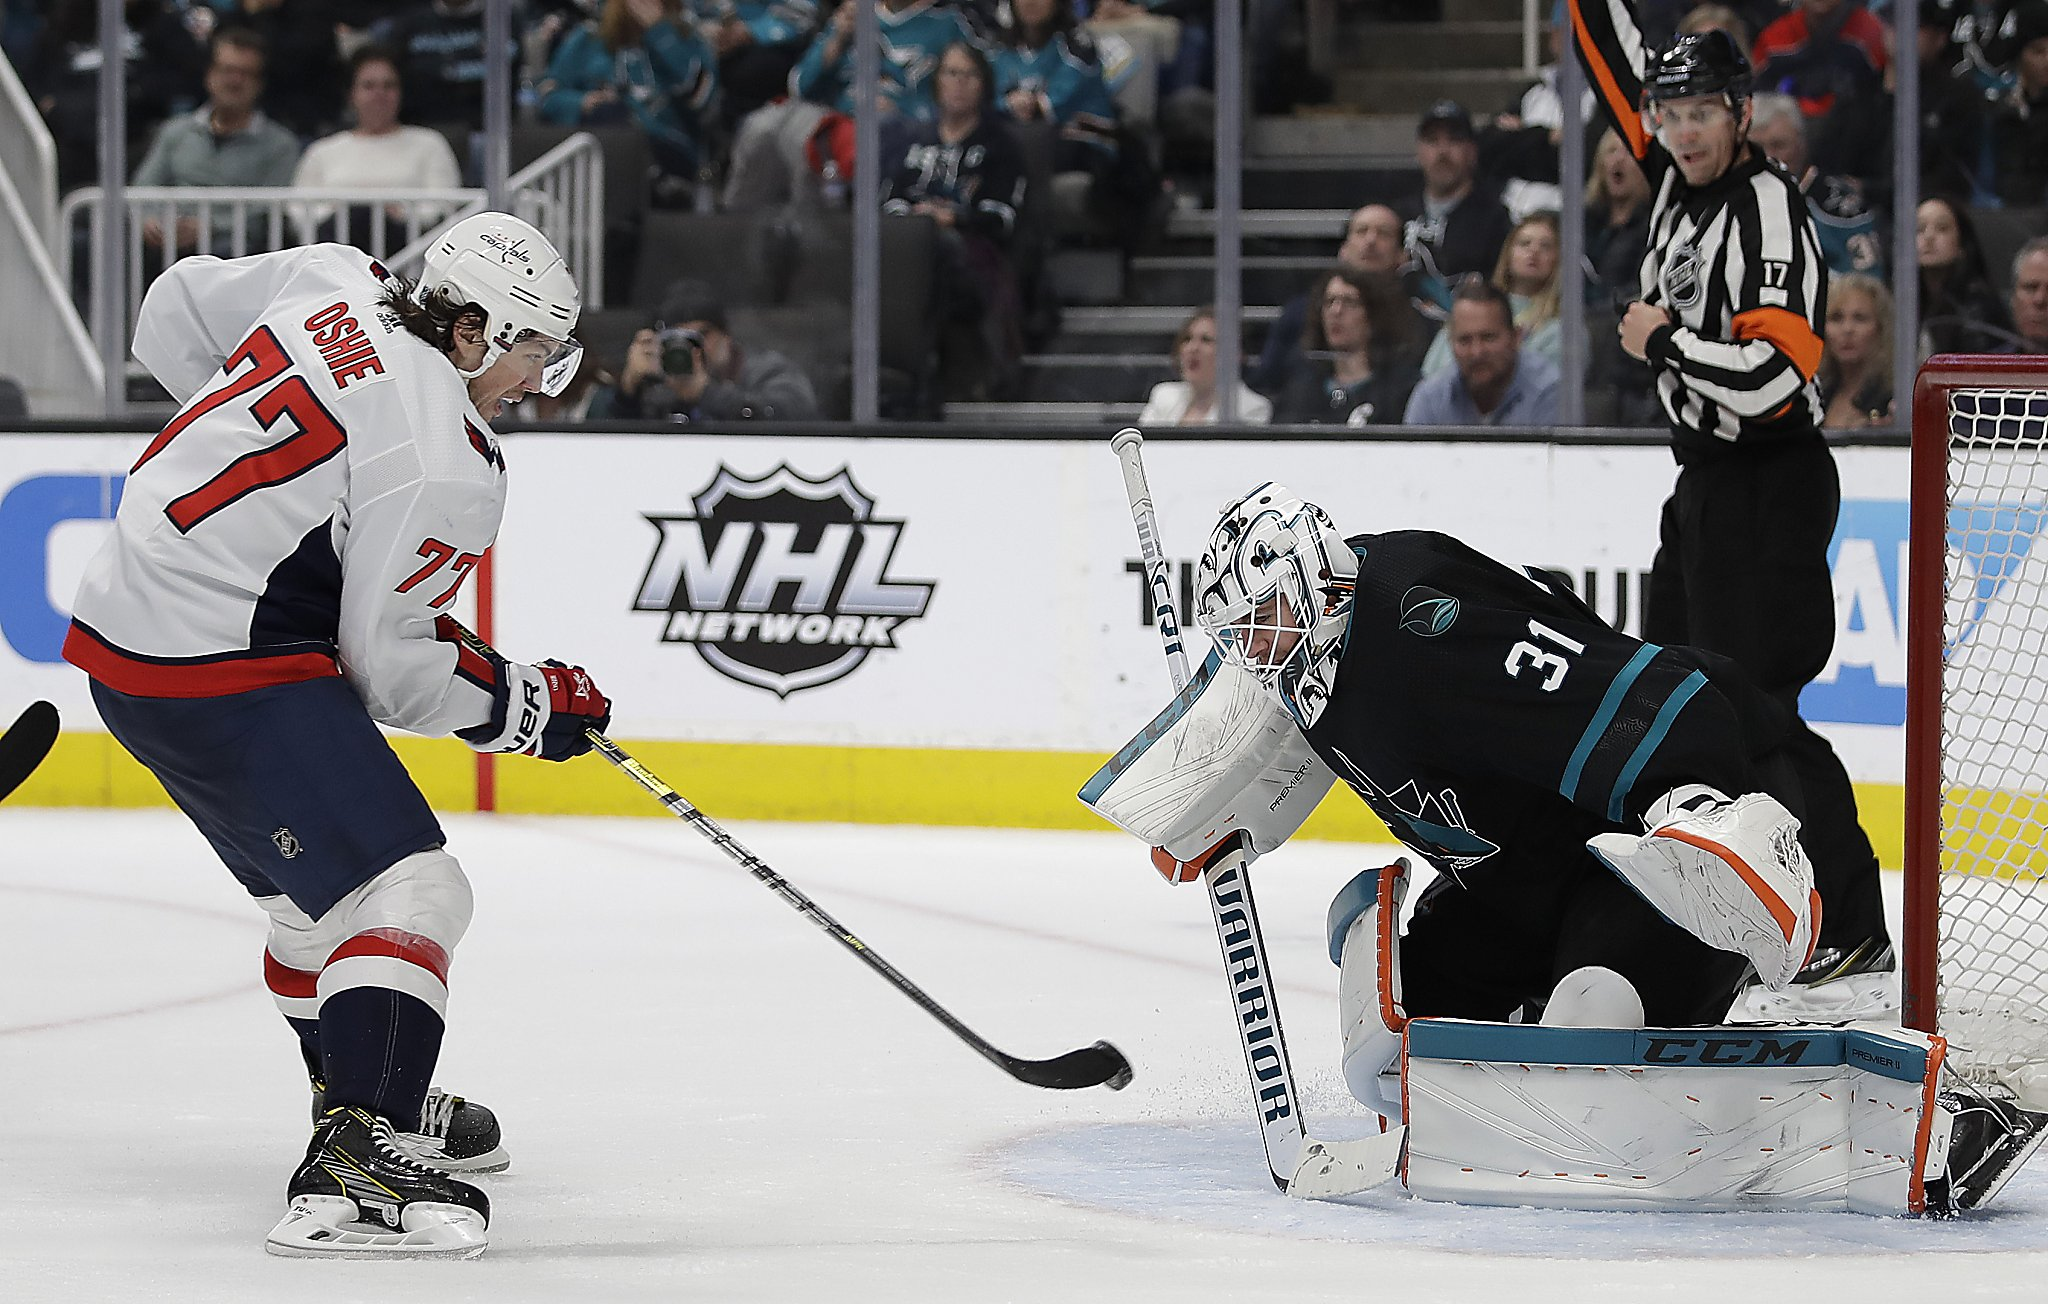 01ba555ef59 Sharks  winning streak ends with 5-1 loss to Capitals - SFChronicle.com